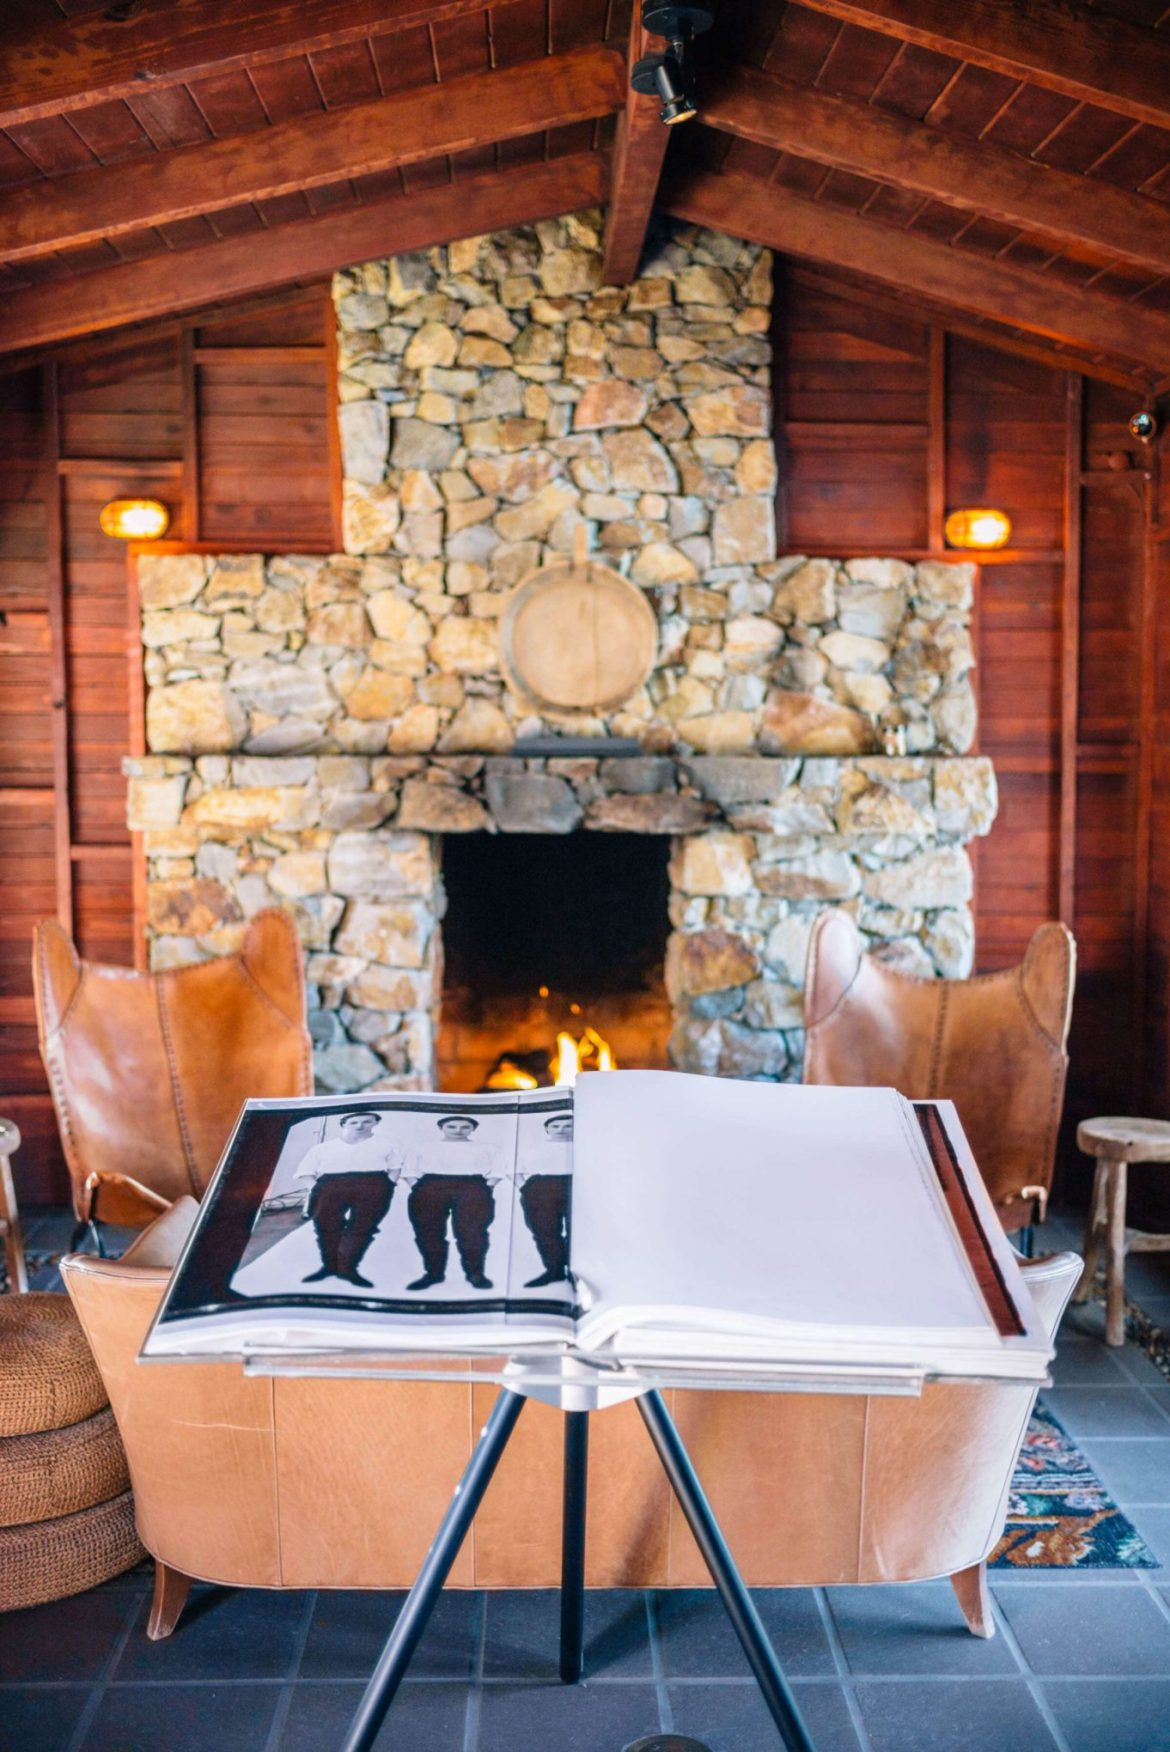 We love this cozy fireplace for chilly nights in the desert. Stay at Sparrows Lodge hotel in palm springs on your next visit.